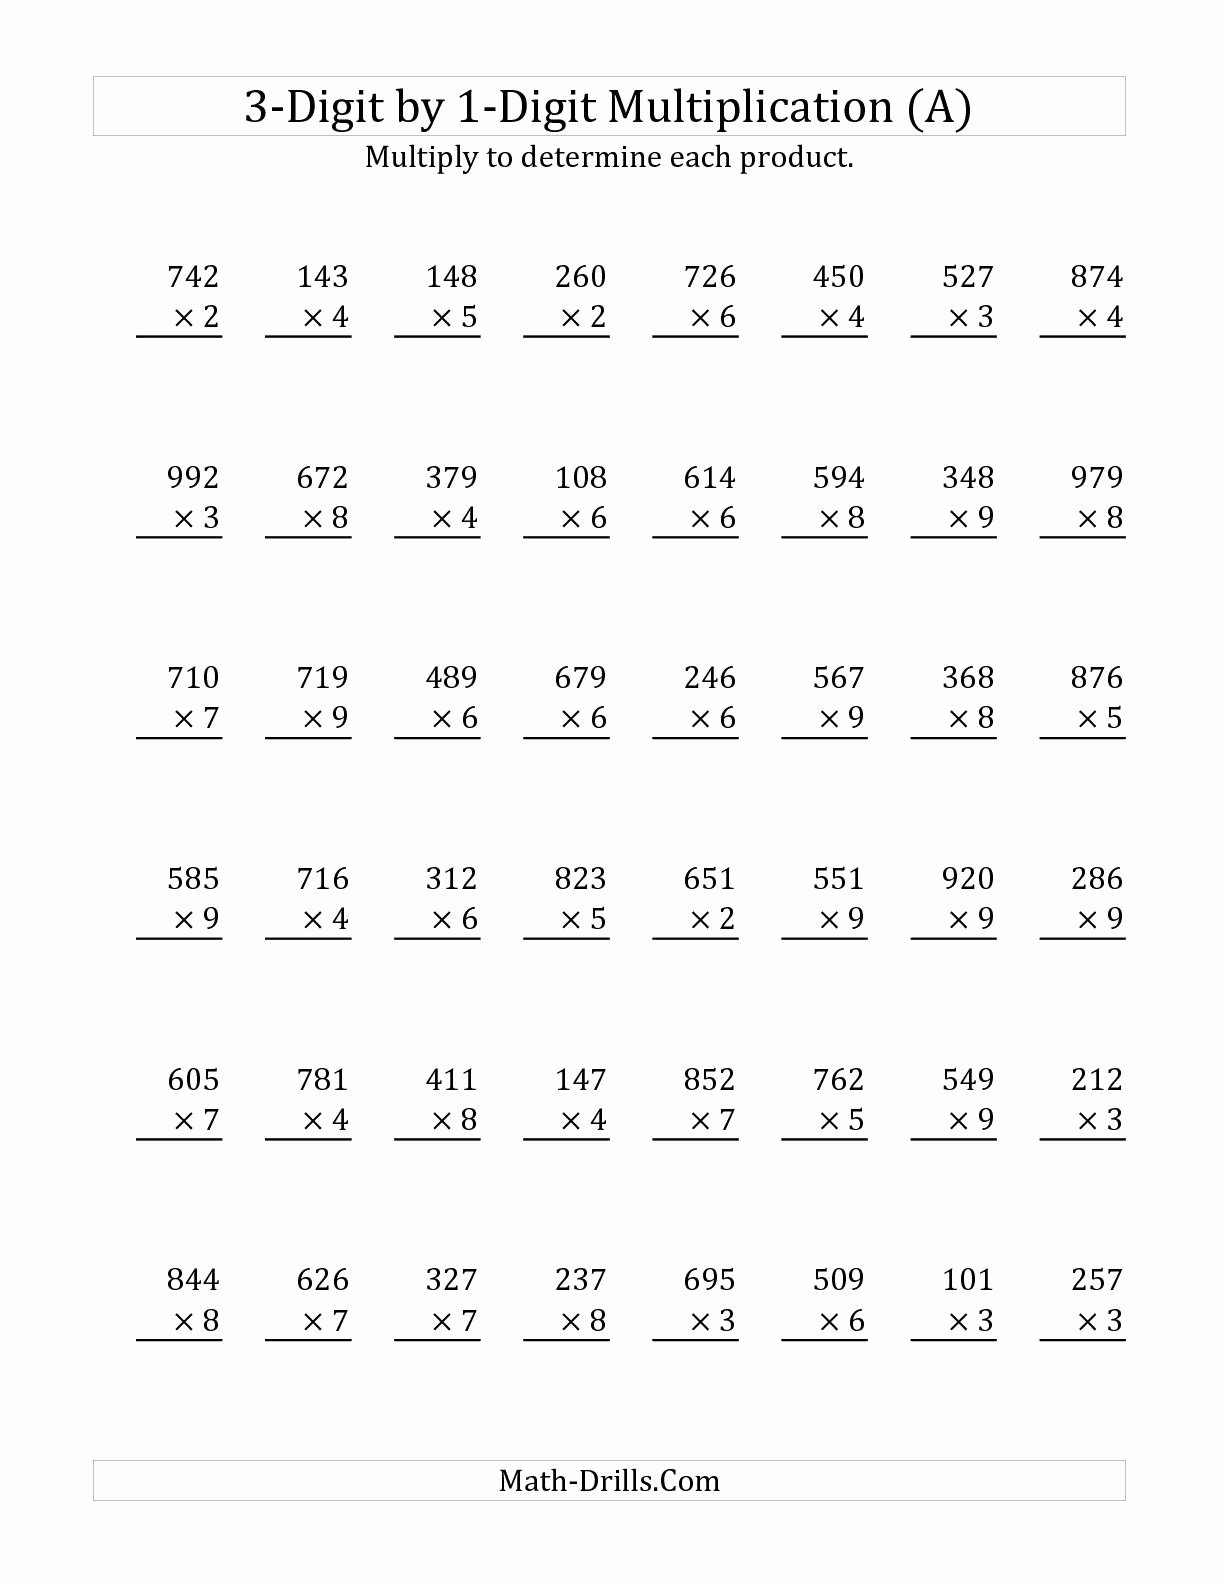 Multiplication Worksheets 3 Digit by 1 Digit Fresh 3 Digit by 1 Digit Multiplication A Long Multiplication